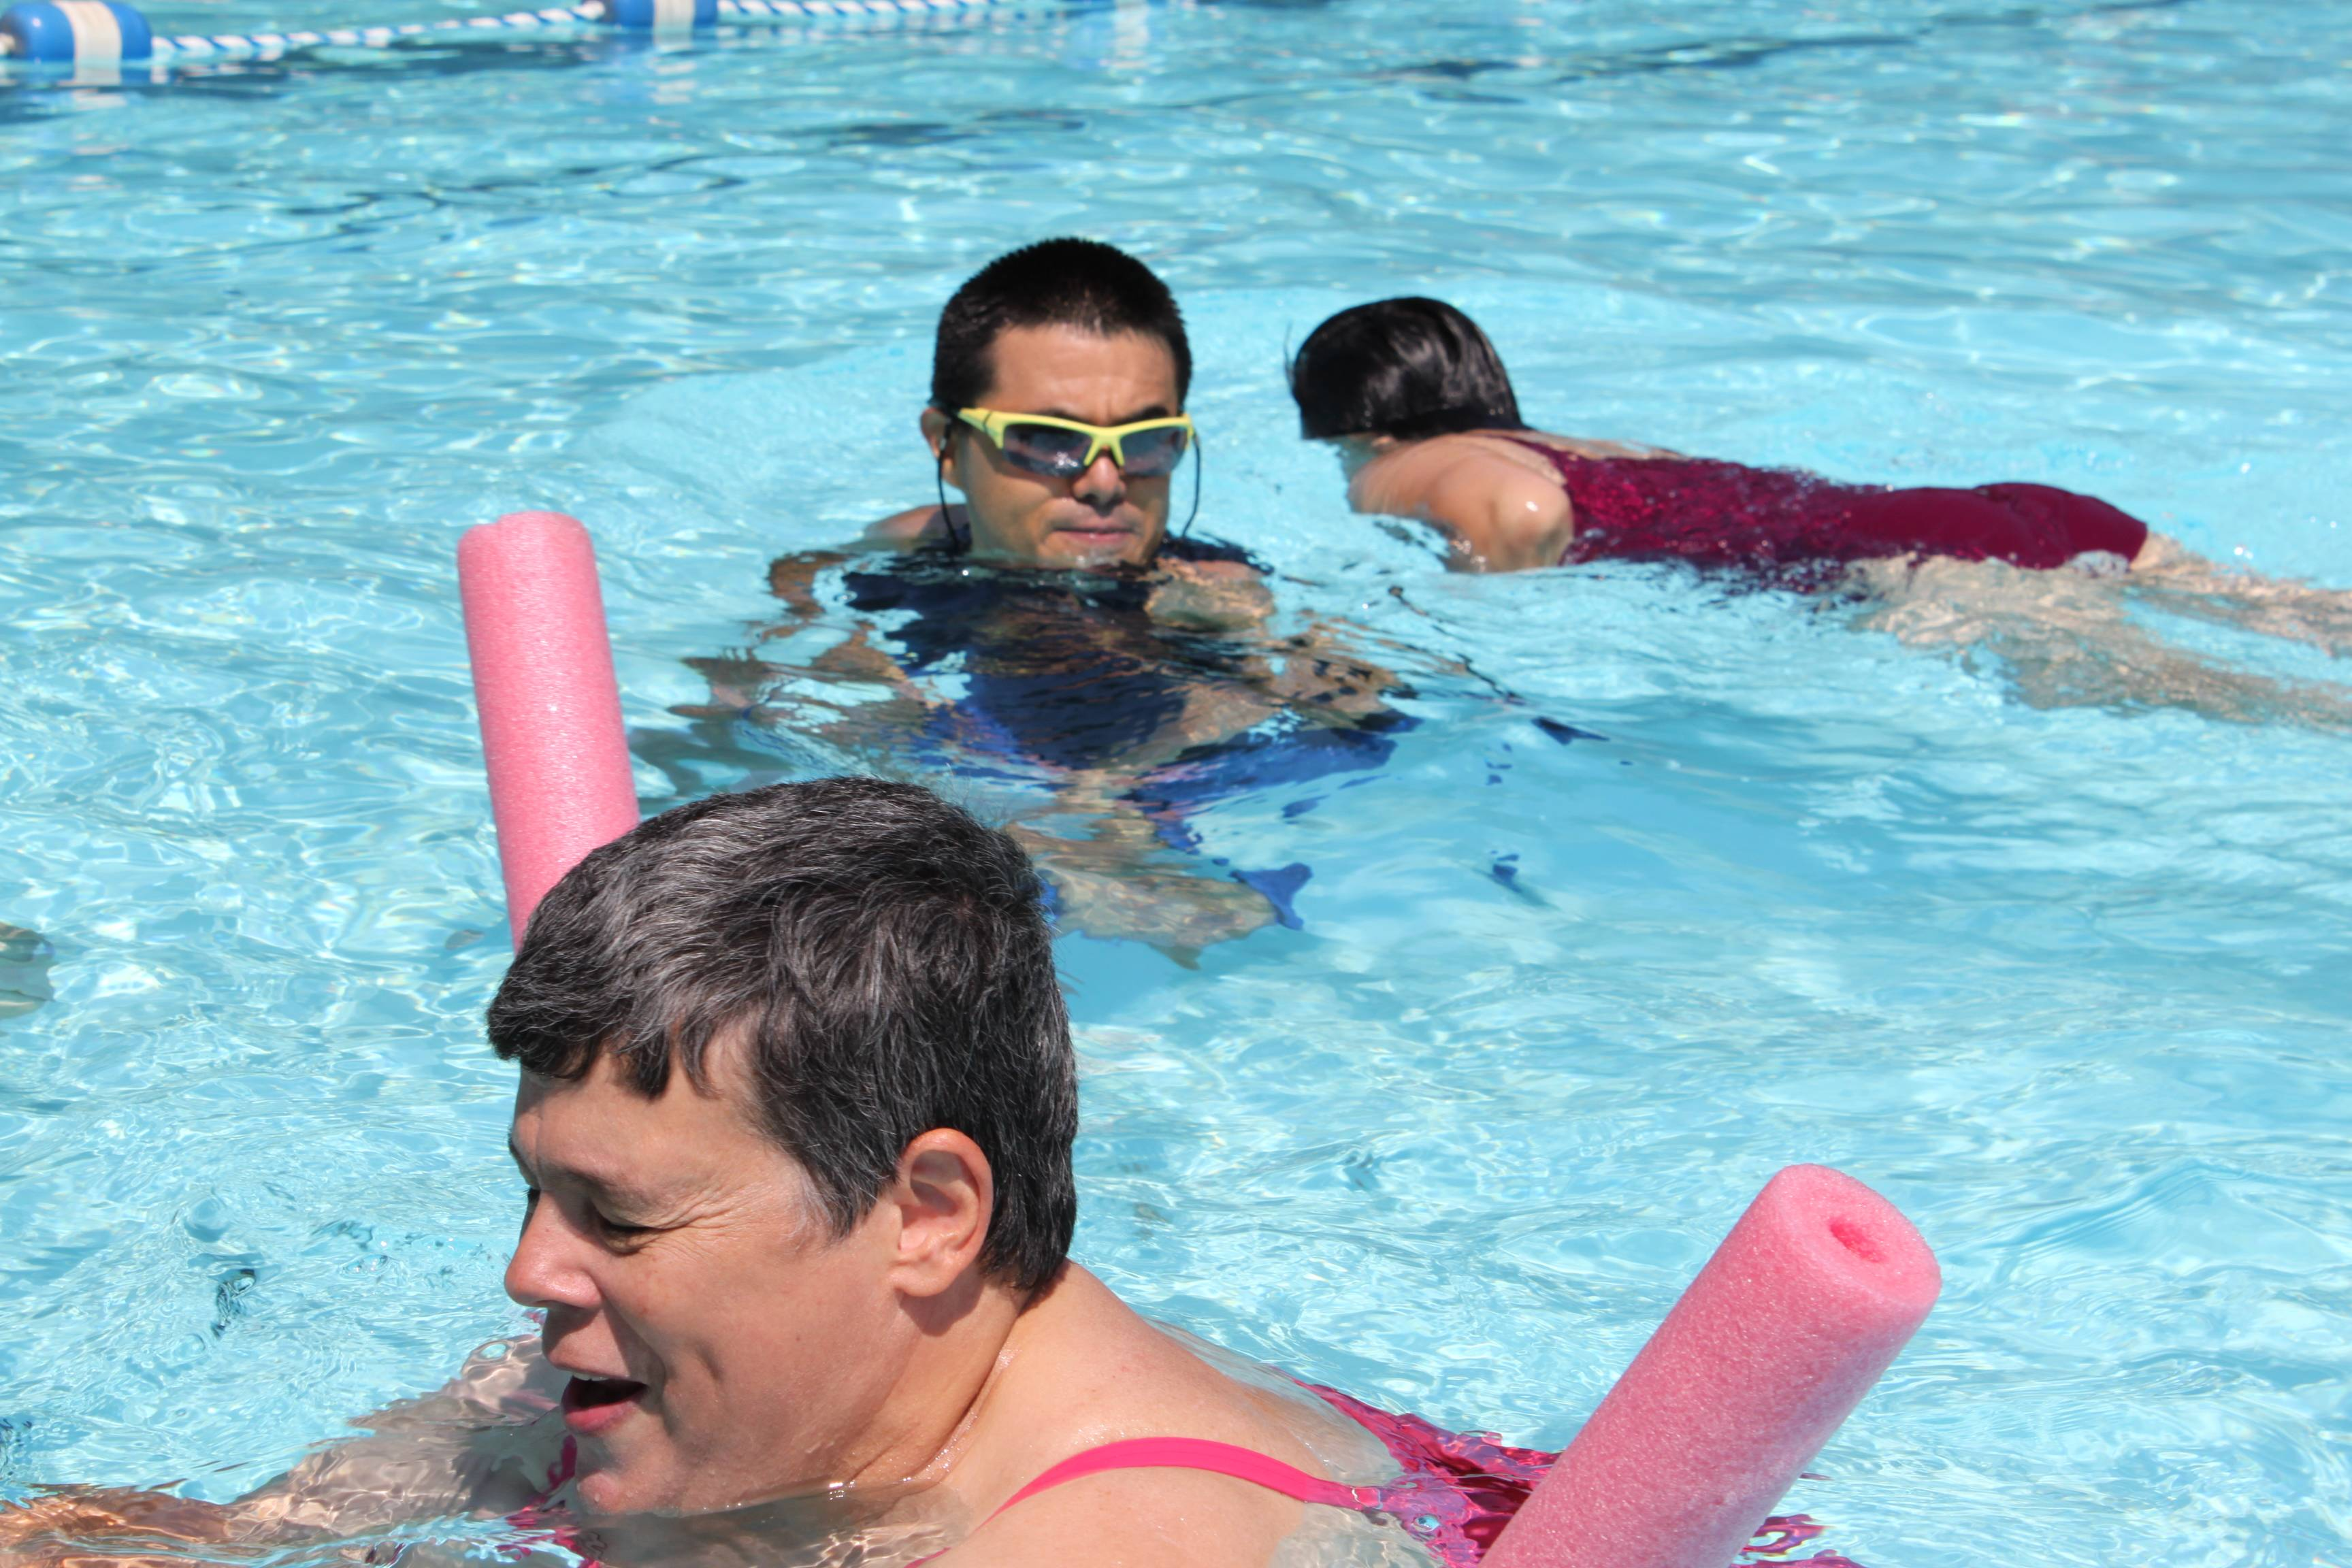 Connie Kaesmeyer (foreground), Angel Covarrubias (middle) and Helen Lee enjoy swimming in the Bensenville pool on a glorious July day.